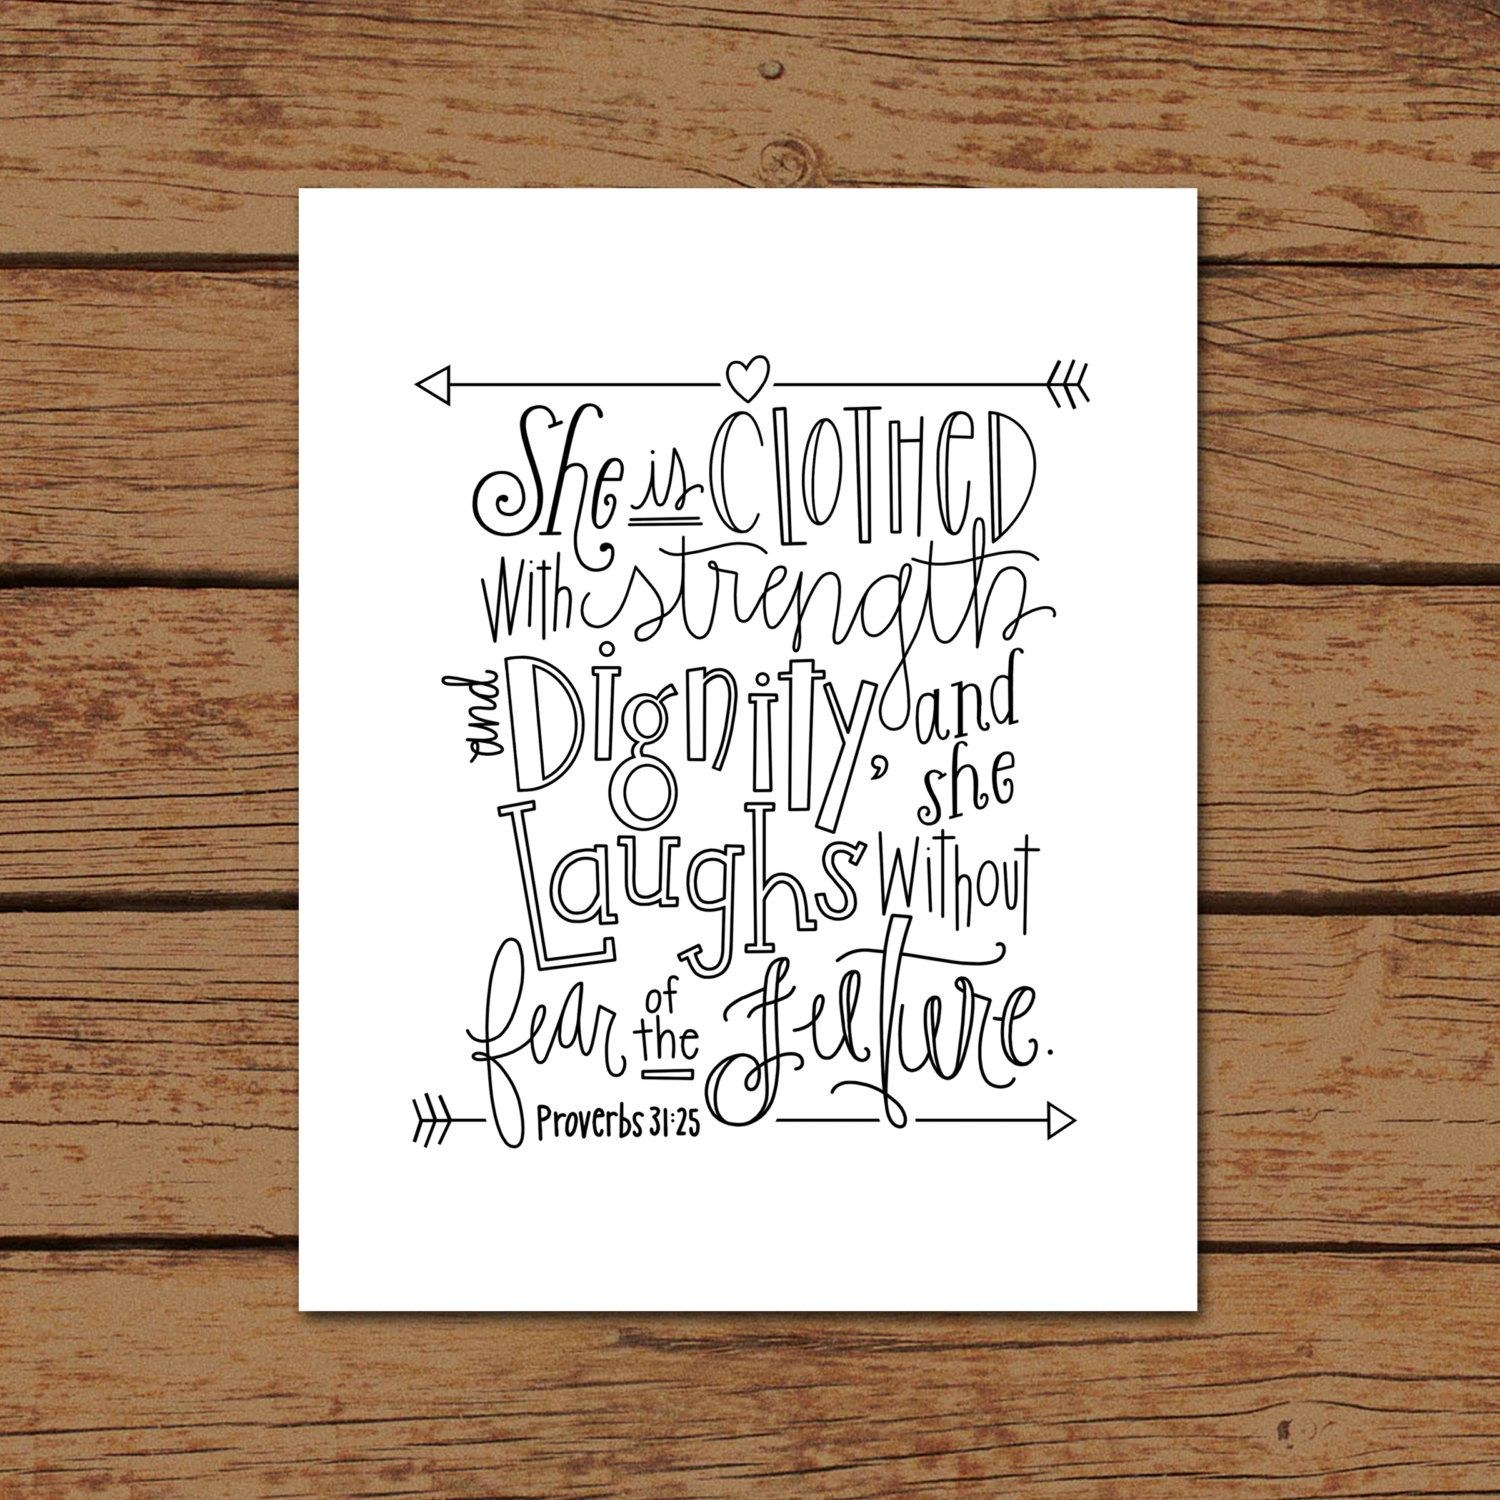 Proverbs 31 25 Bible Verse Hand Drawn Art By Sincerelyterilea